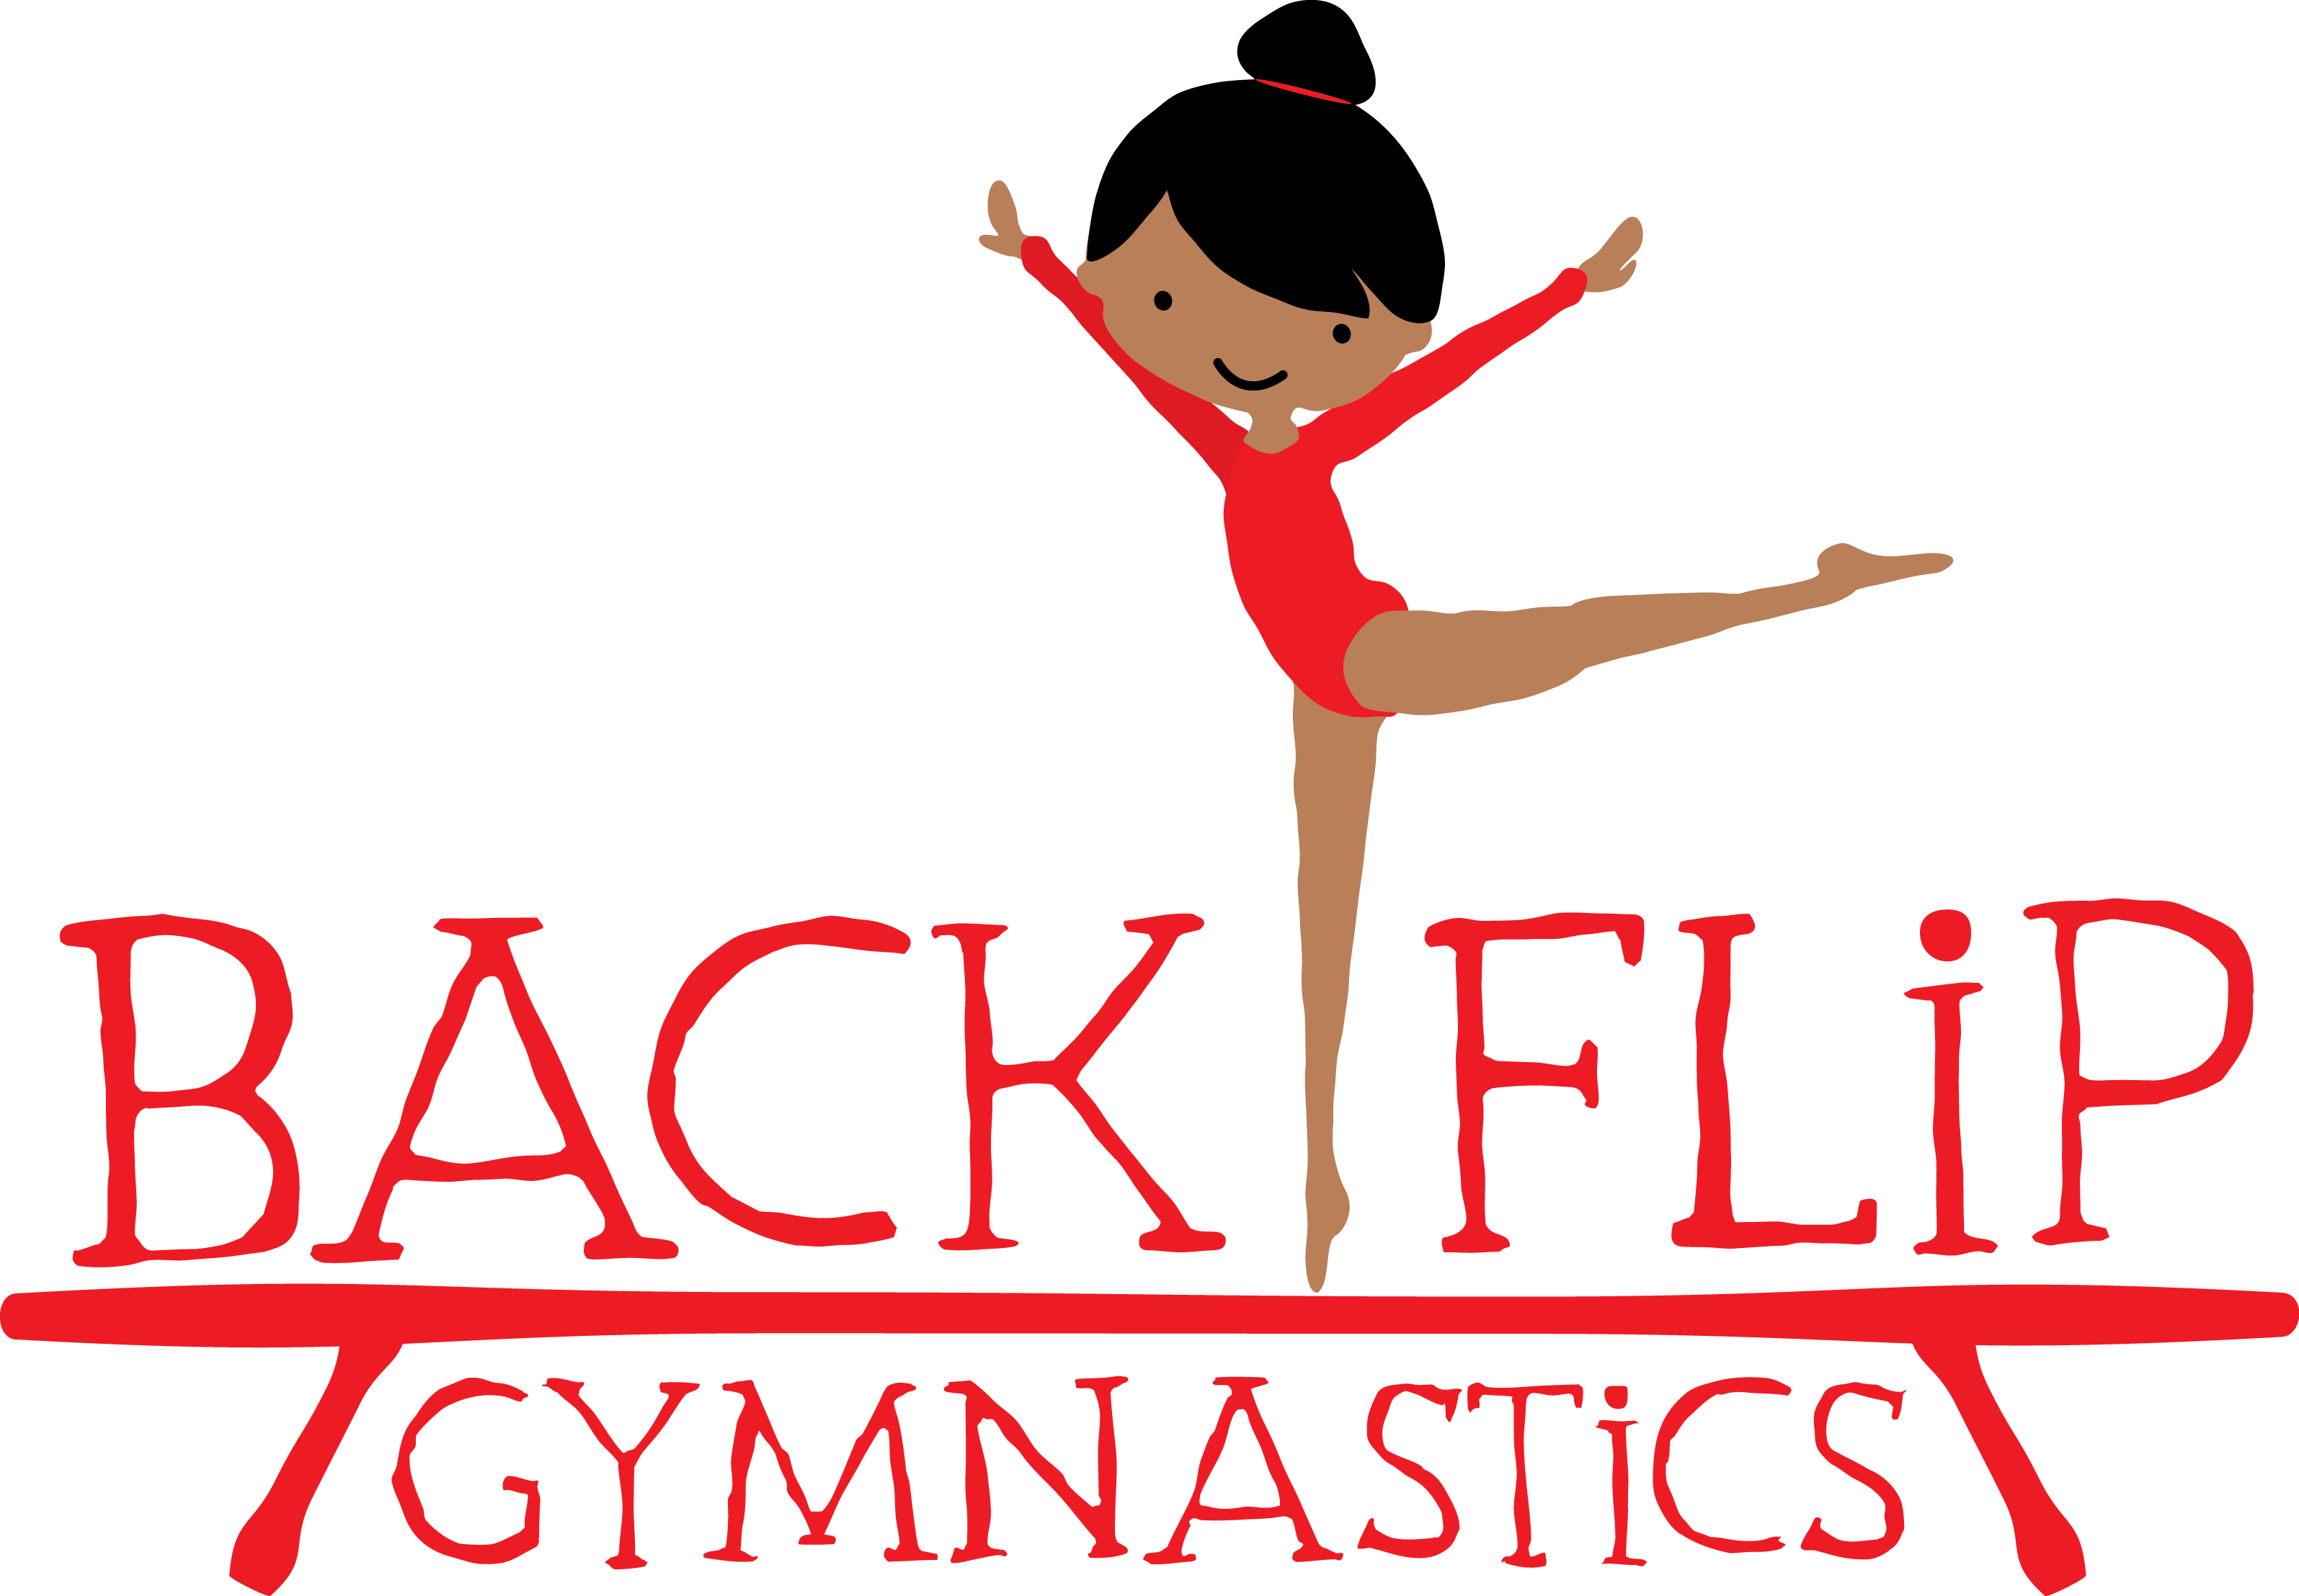 Gym clipart toddler gymnastics. Home page backflip